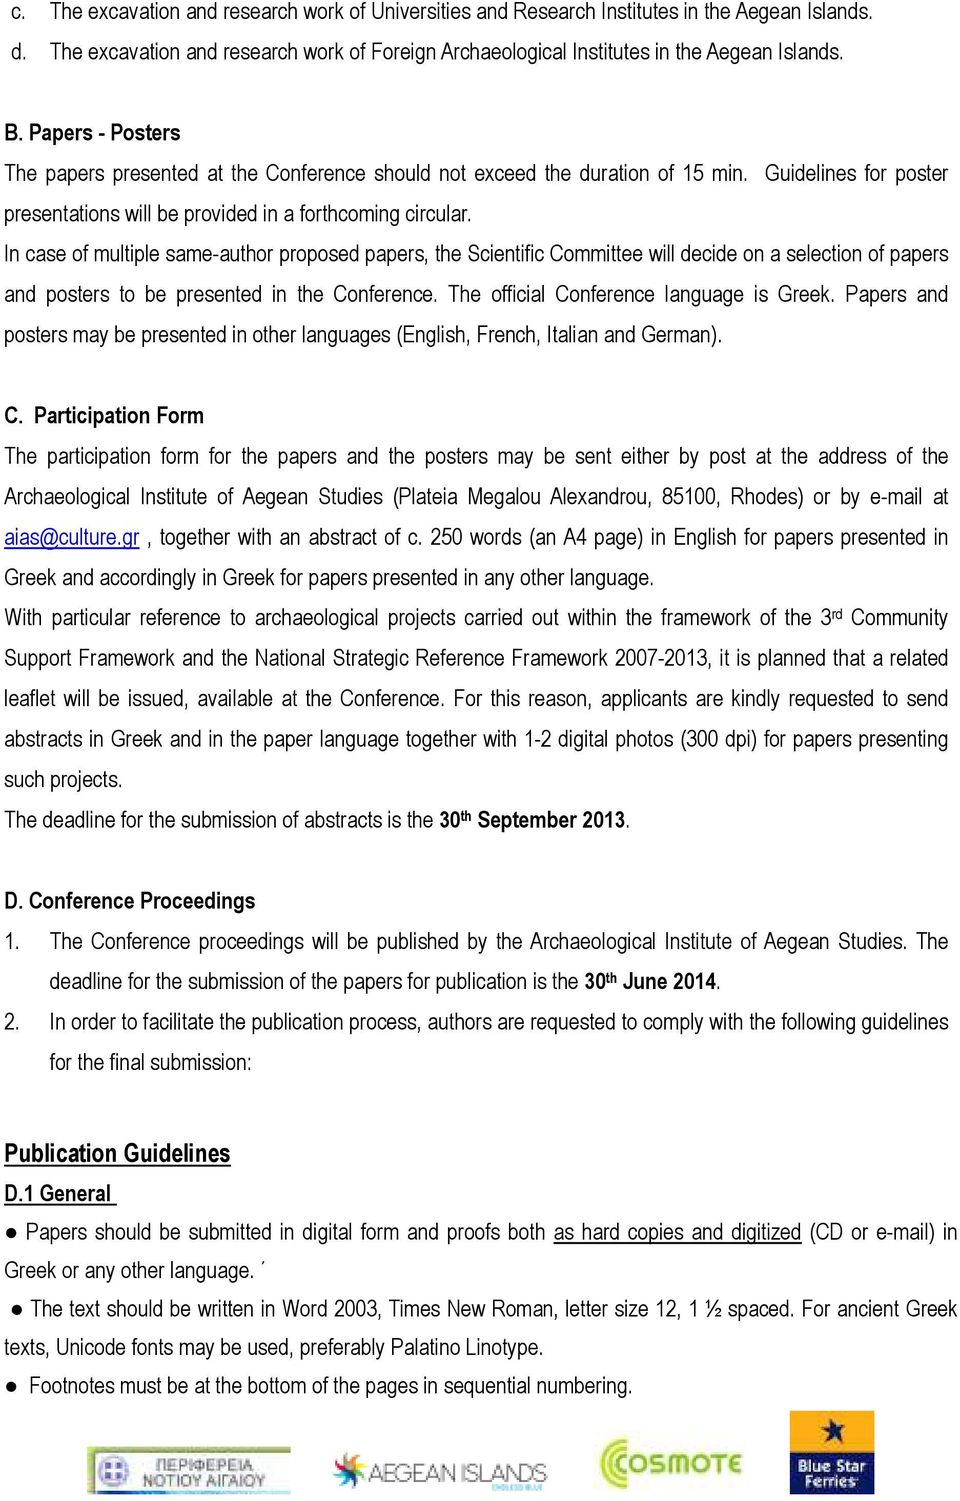 In case of multiple same-author proposed papers, the Scientific Committee will decide on a selection of papers and posters to be presented in the Conference. The official Conference language is Greek.